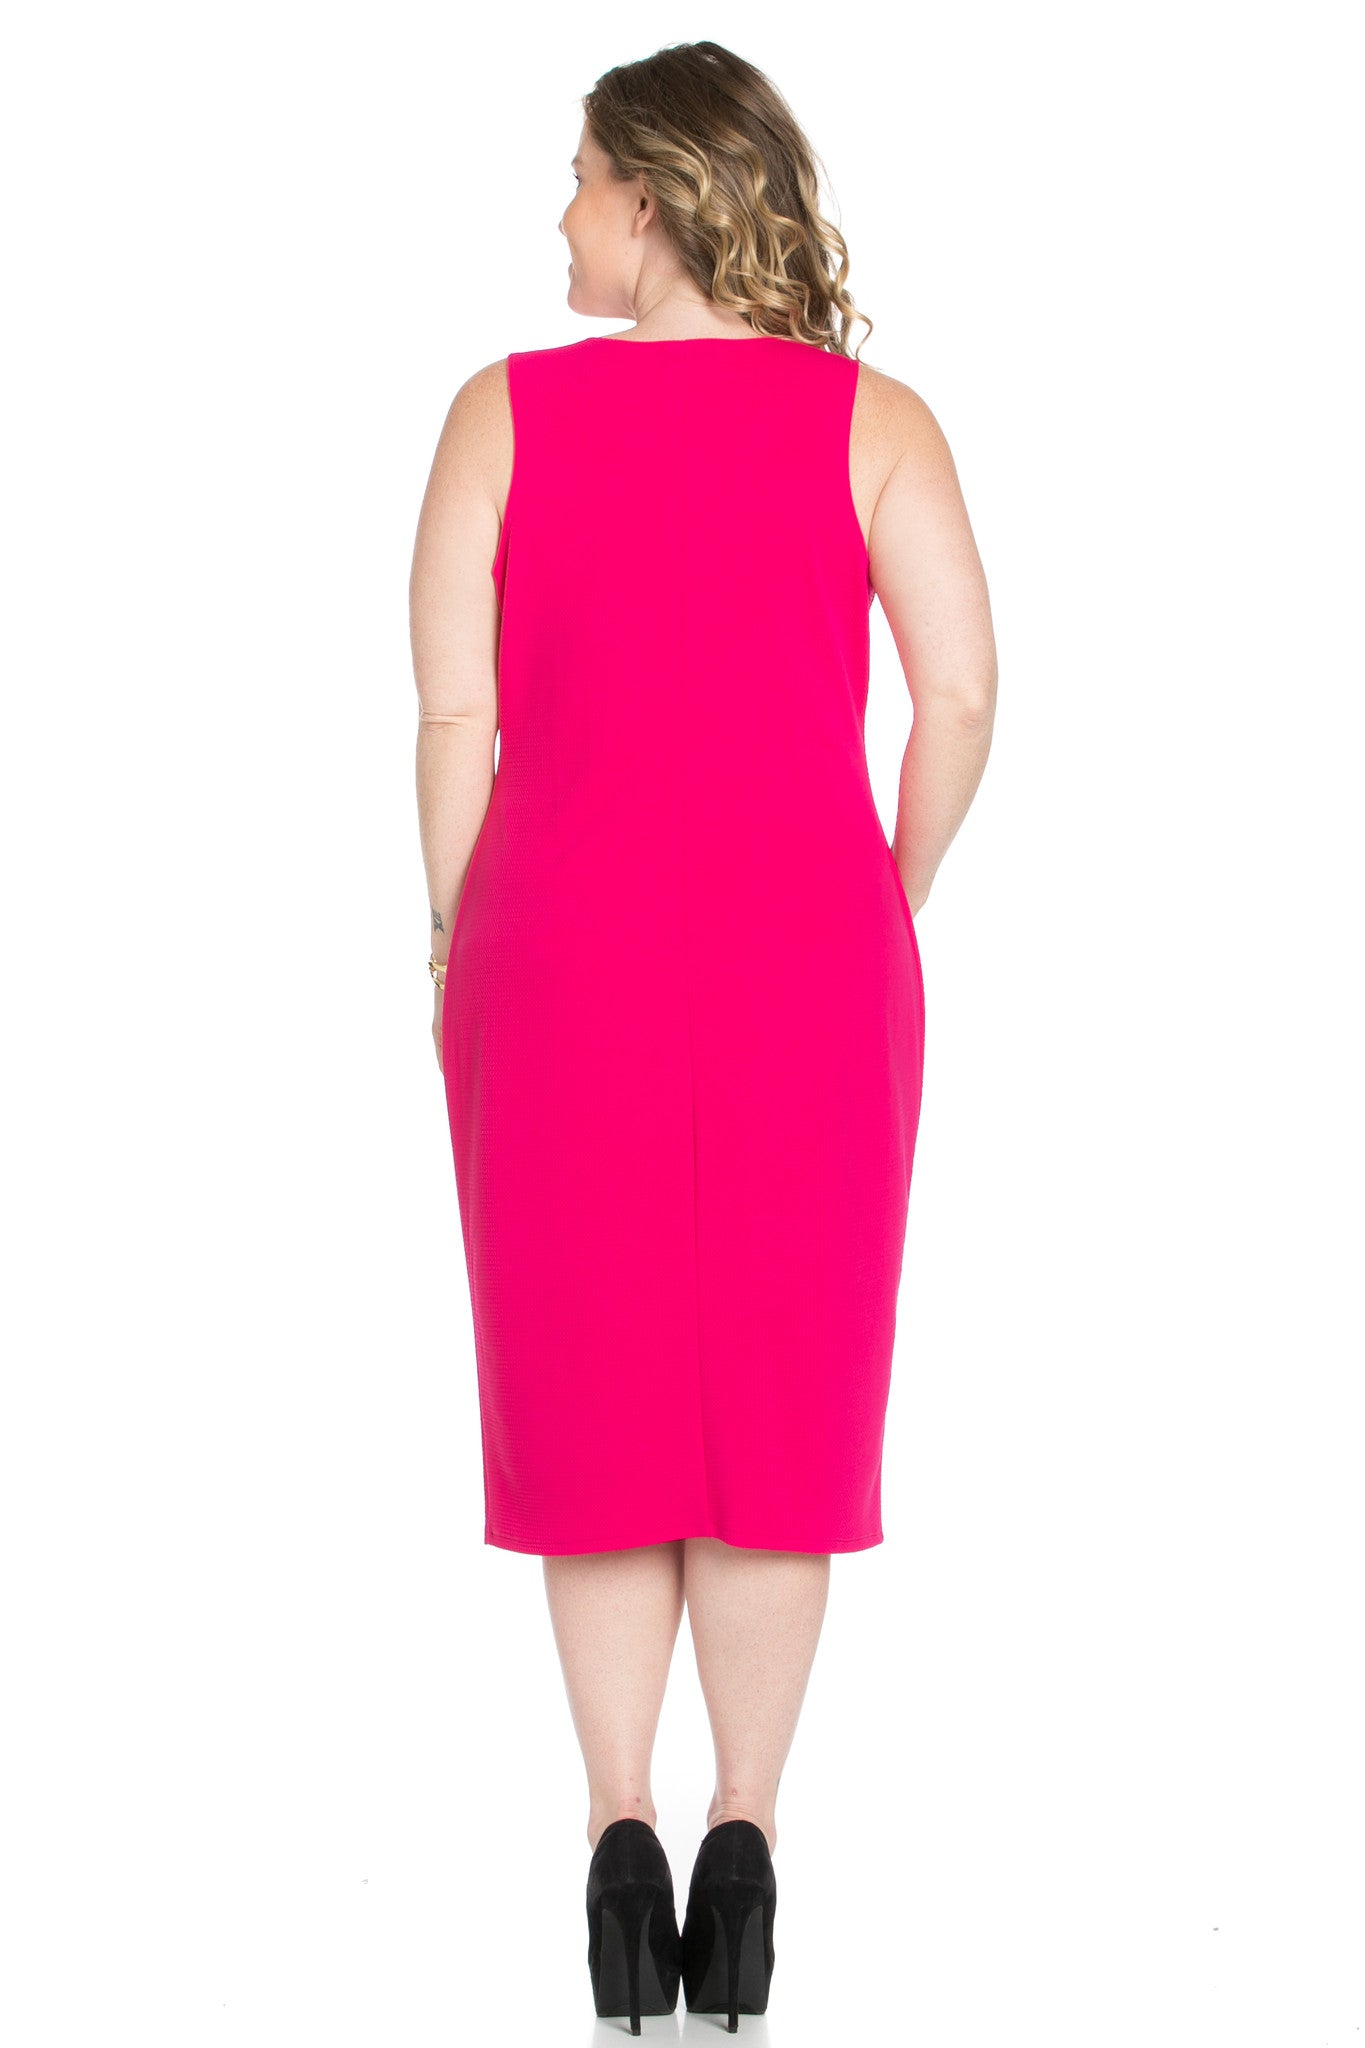 Fuschia Modest a Bit with Bare Shoulders Dress - Dresses - My Yuccie - 4